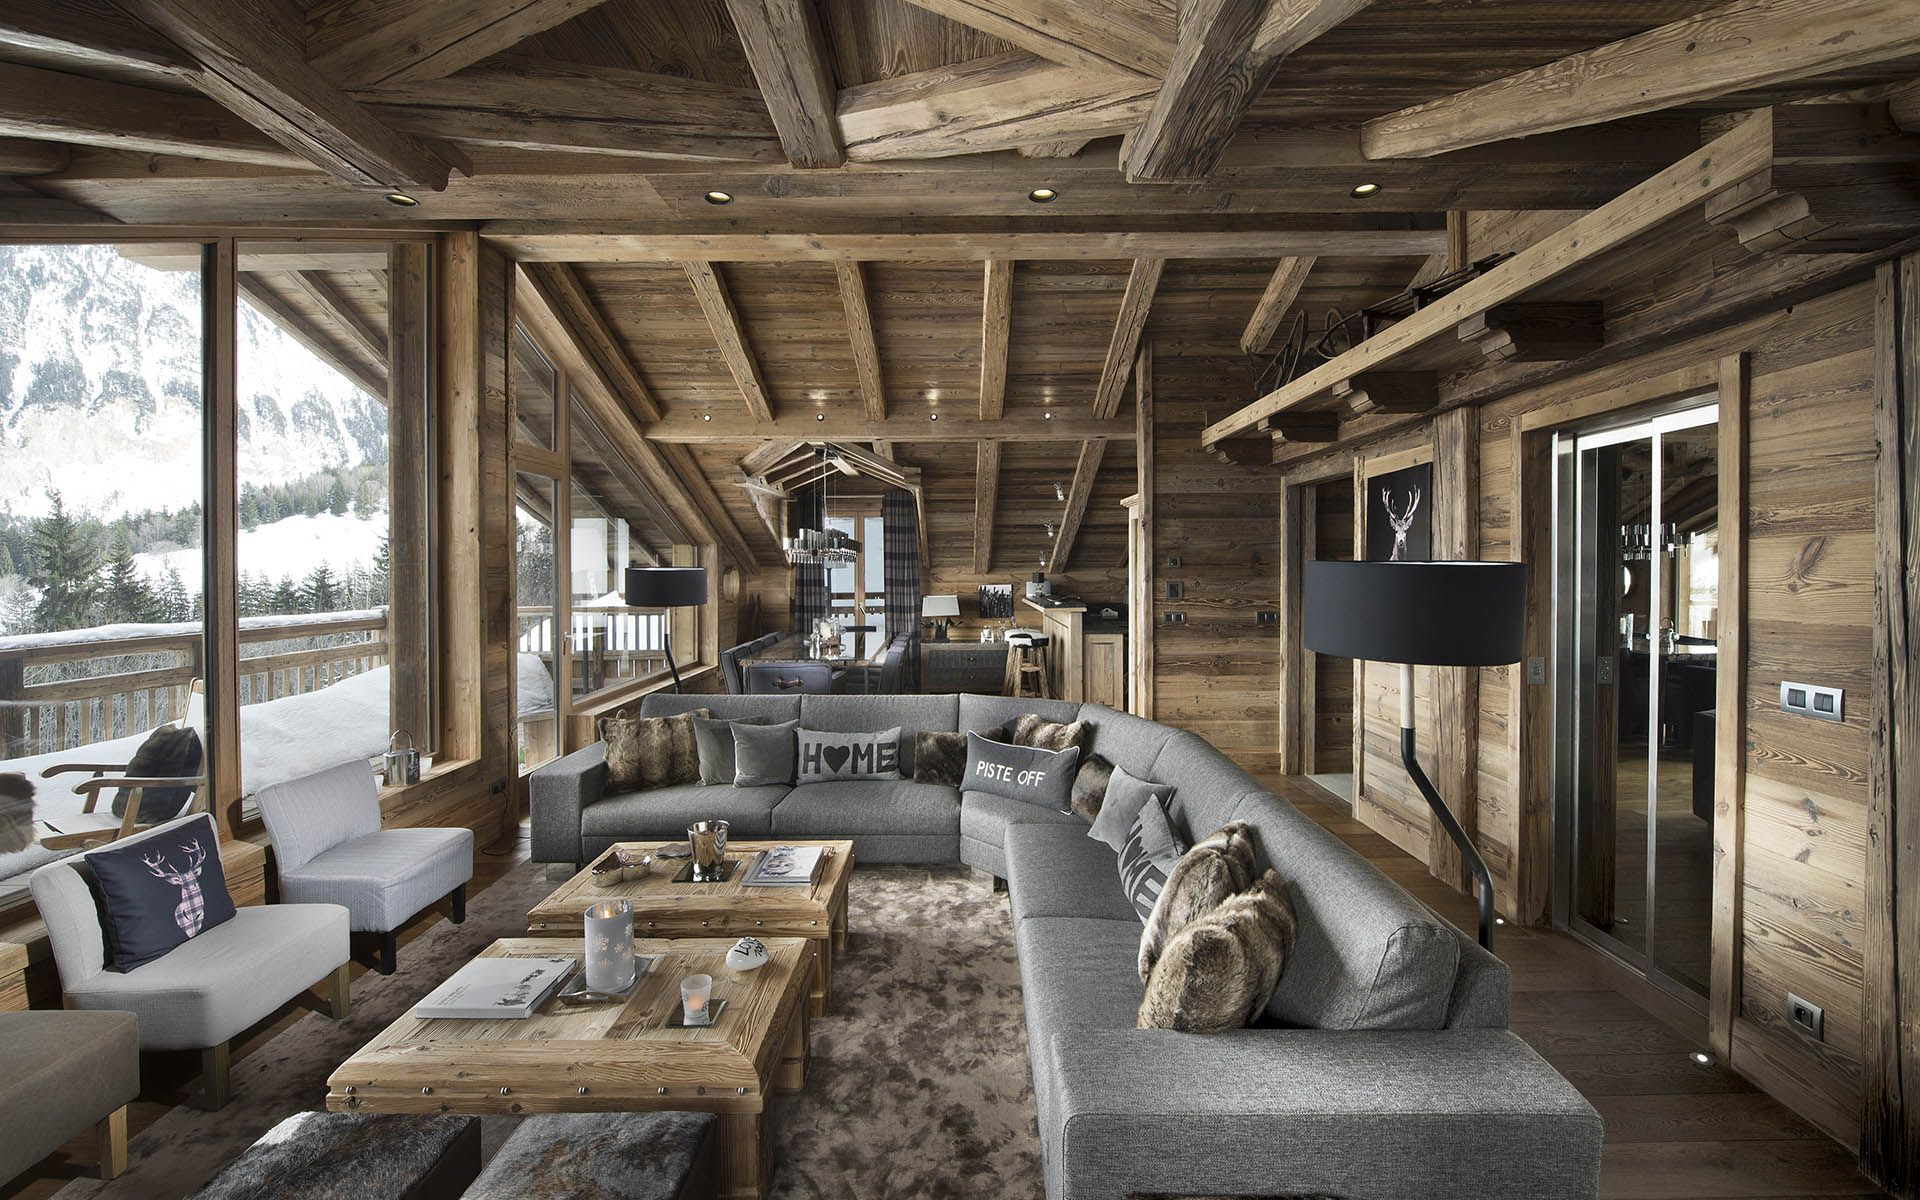 Luxury ski chalet chalet m courchevel france france